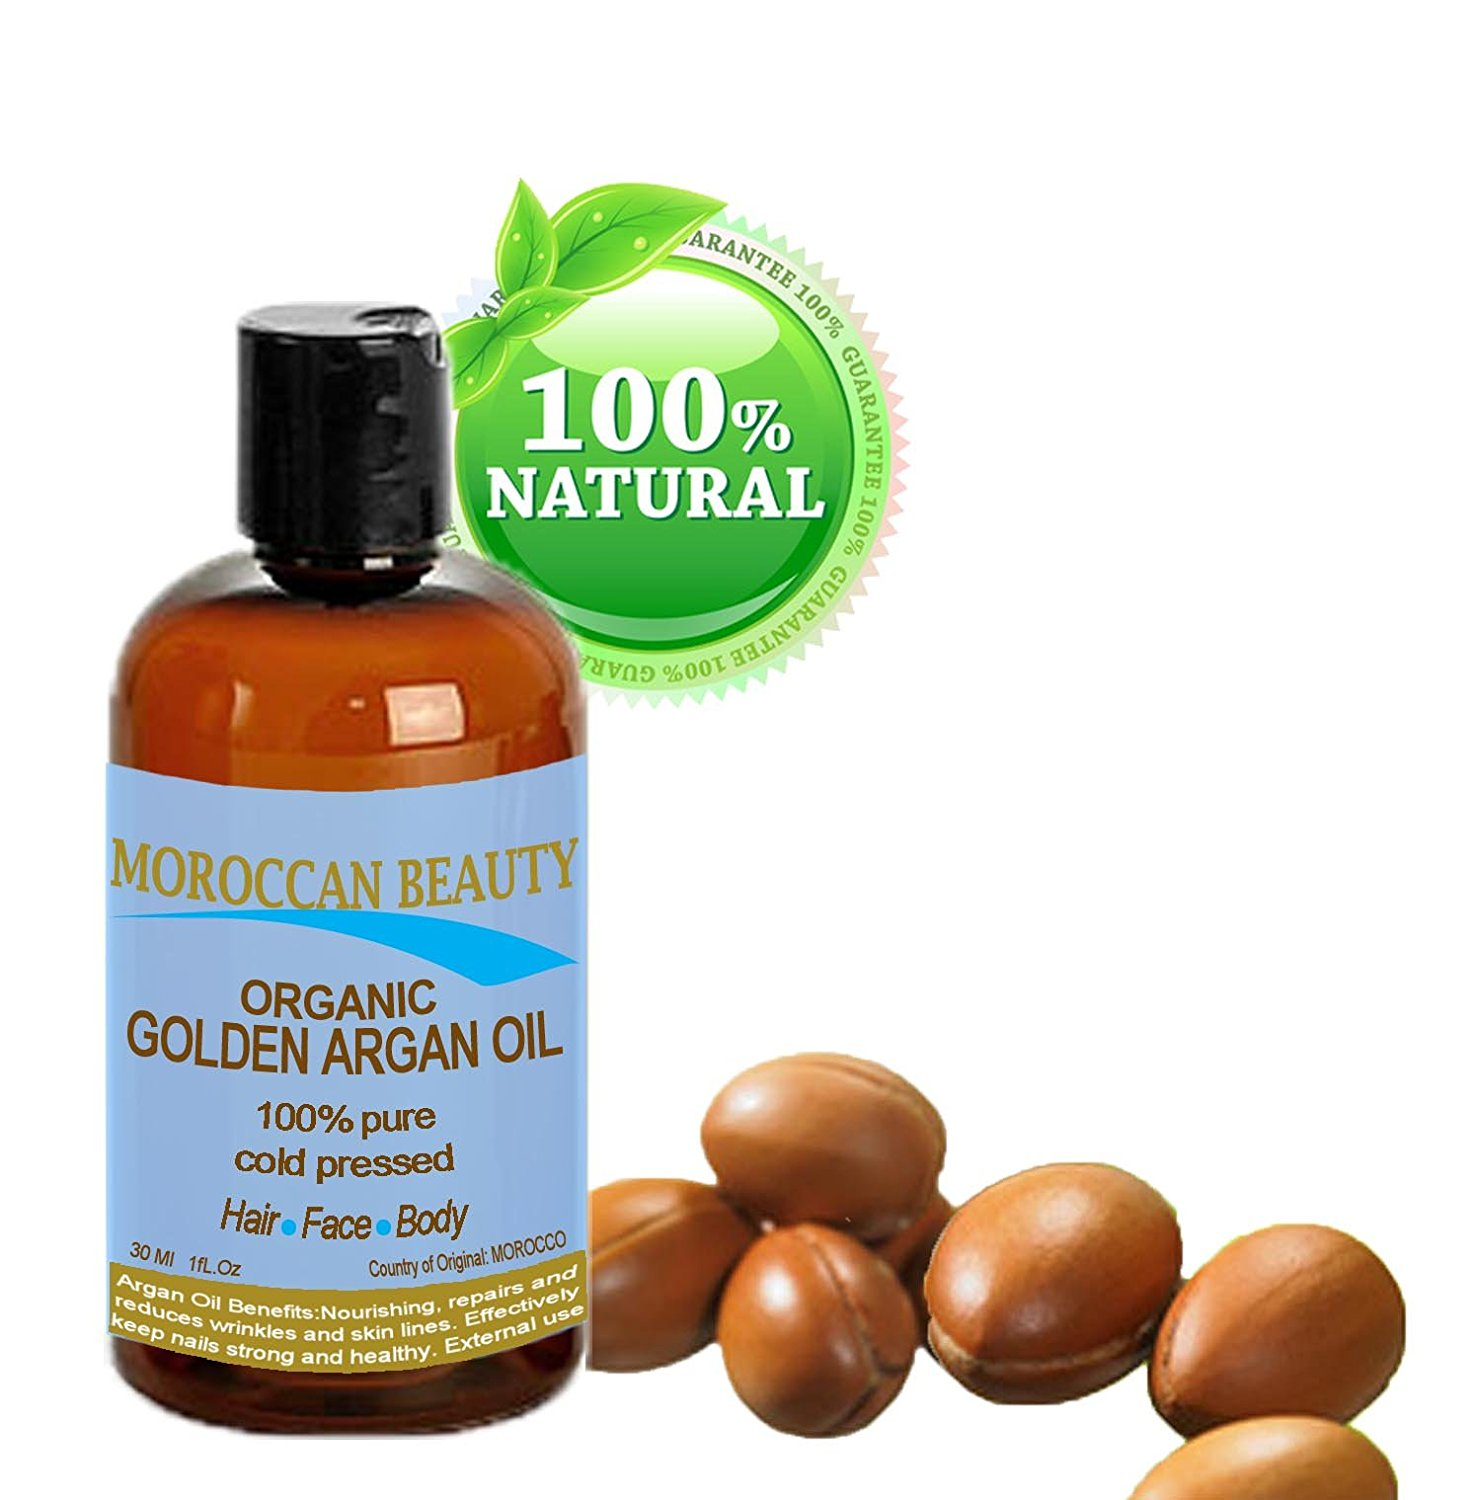 Moroccan Beauty Golden Argan Oil, 100% Pure/ Natural. Certified Organic. For Face, Hair and Body. 1 oz-30 Ml